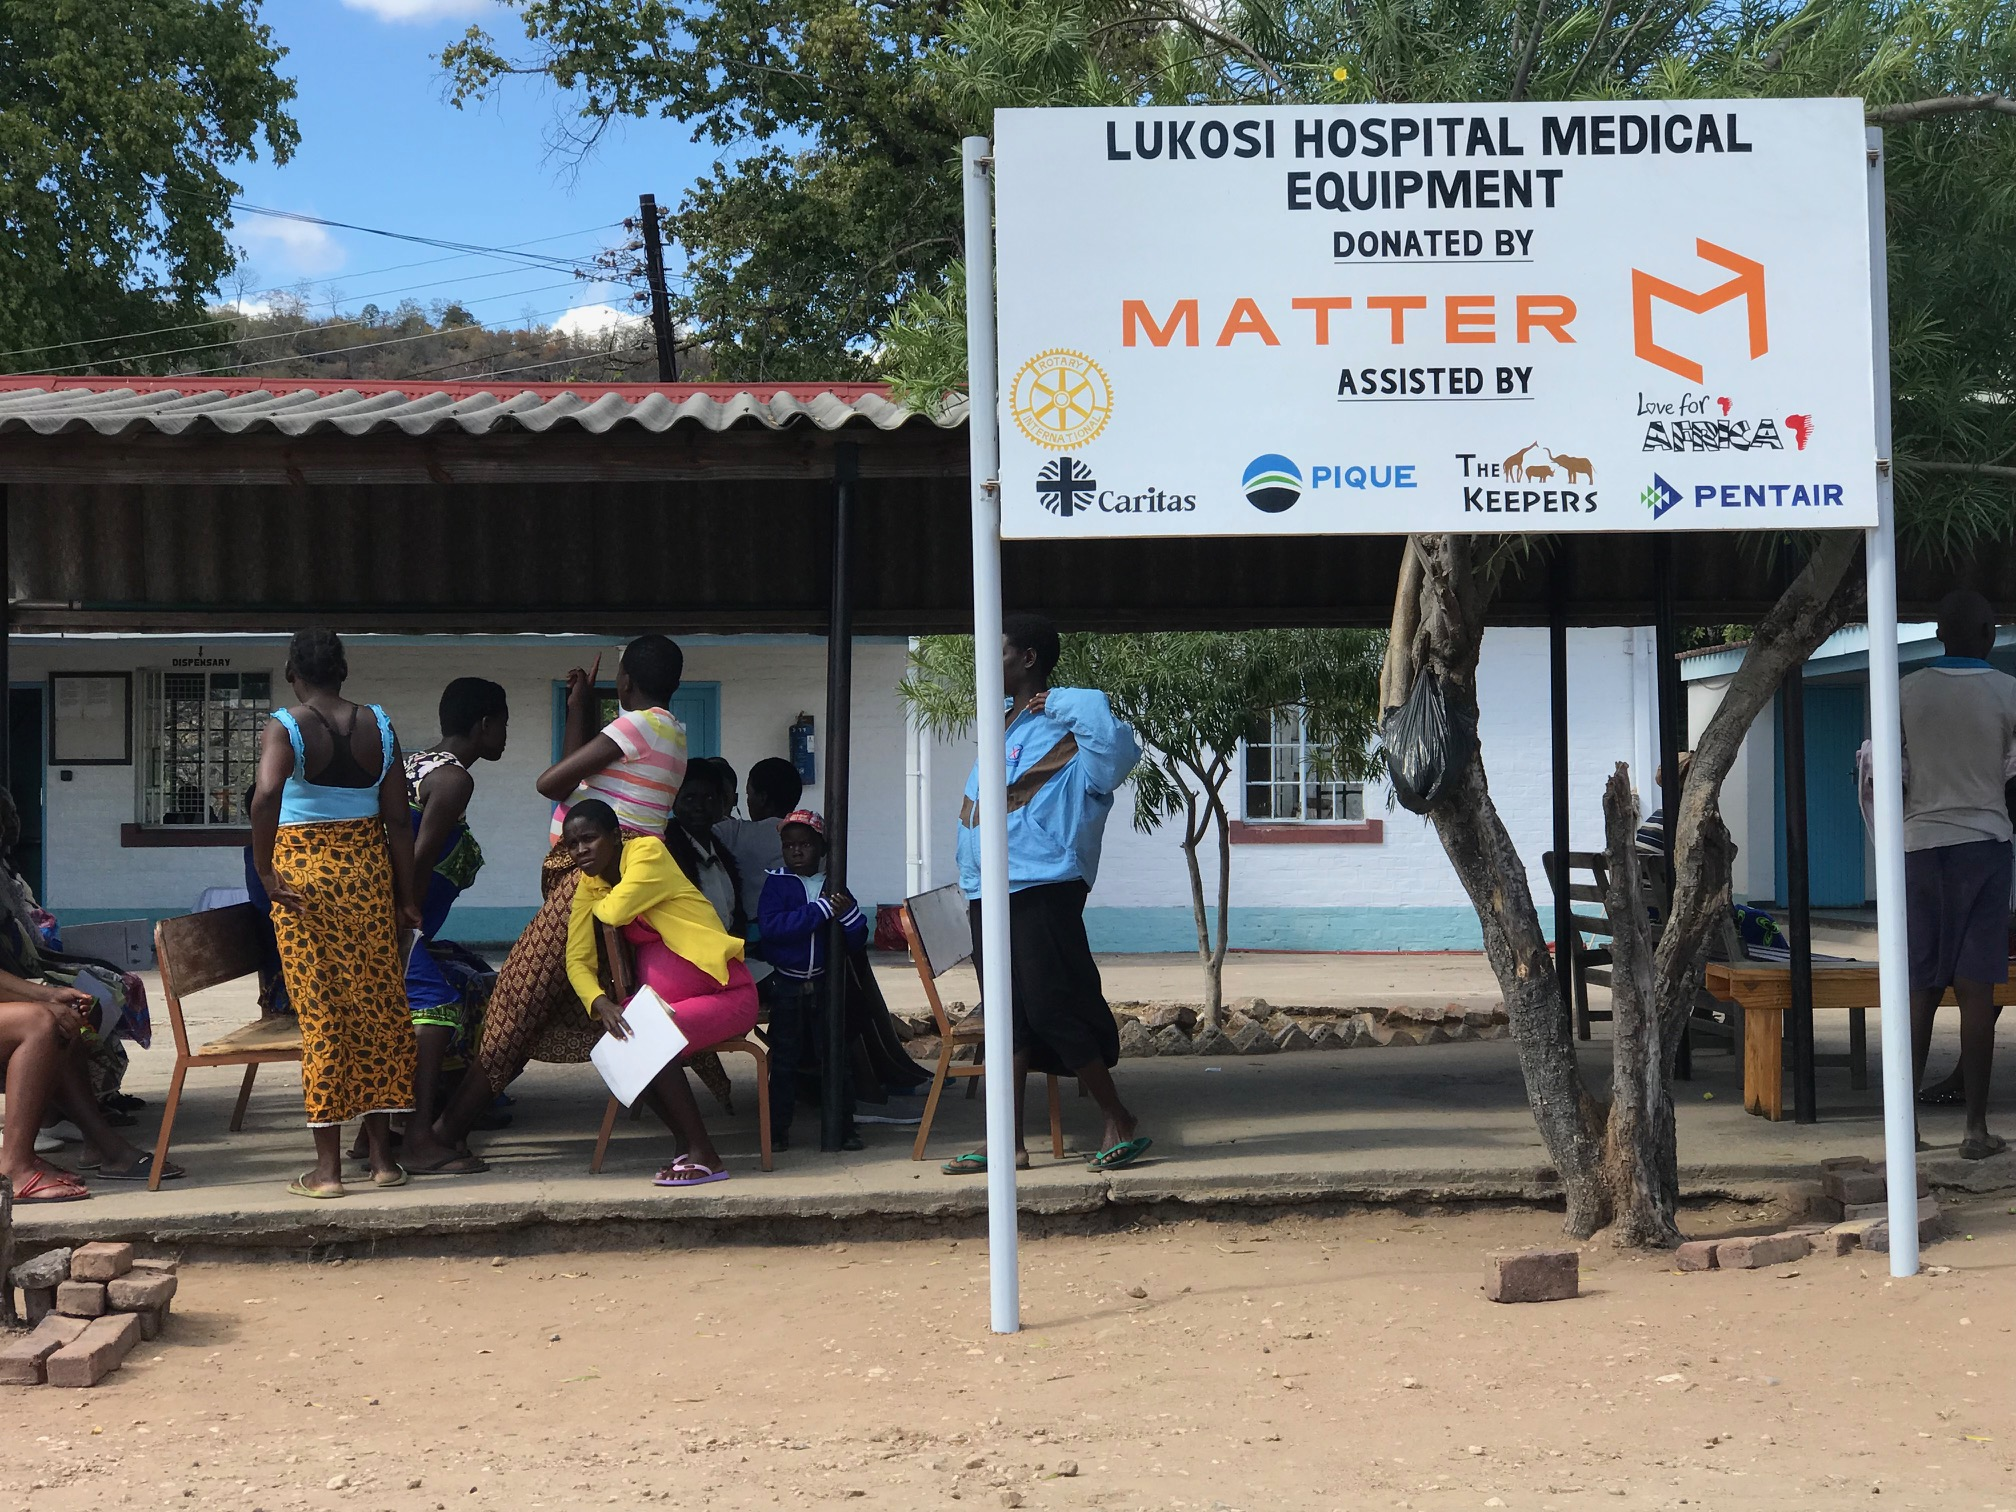 Innovation at Lukosi Hospital in Zimbabwe